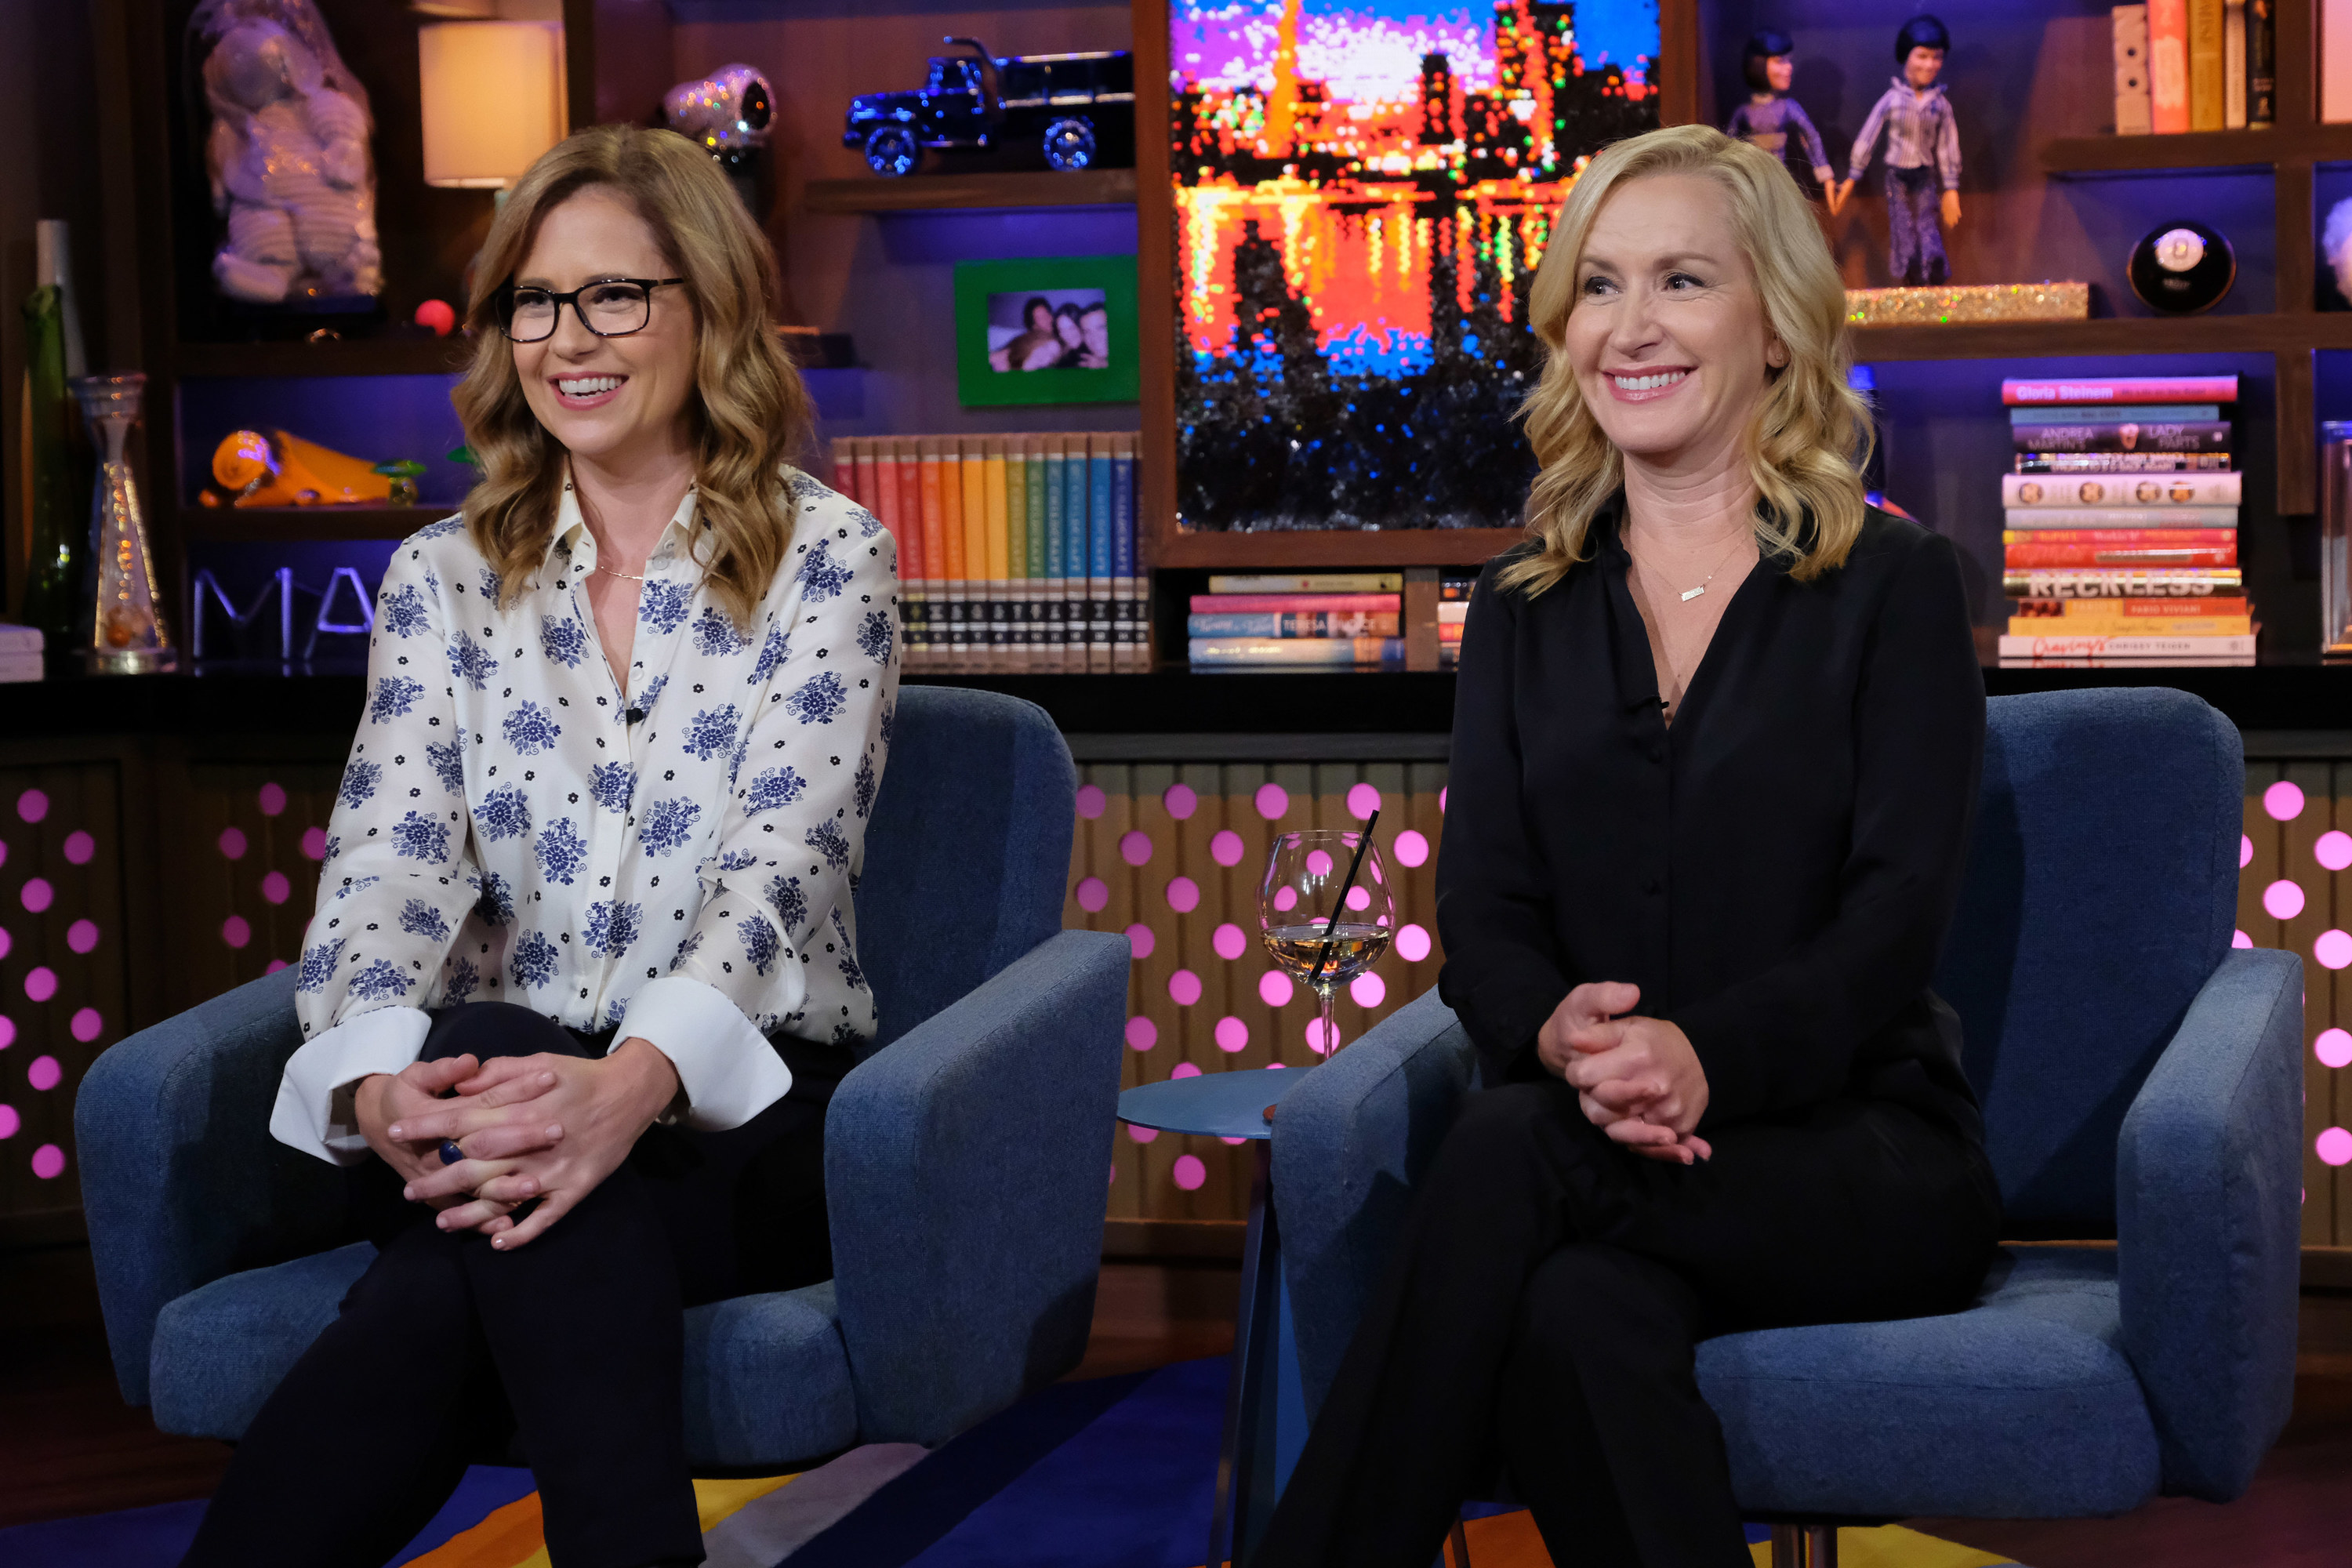 Jessica Fischer and Angela Kinsey sit next to each other while appearing on Watch What Happens Live With Andy Cohen